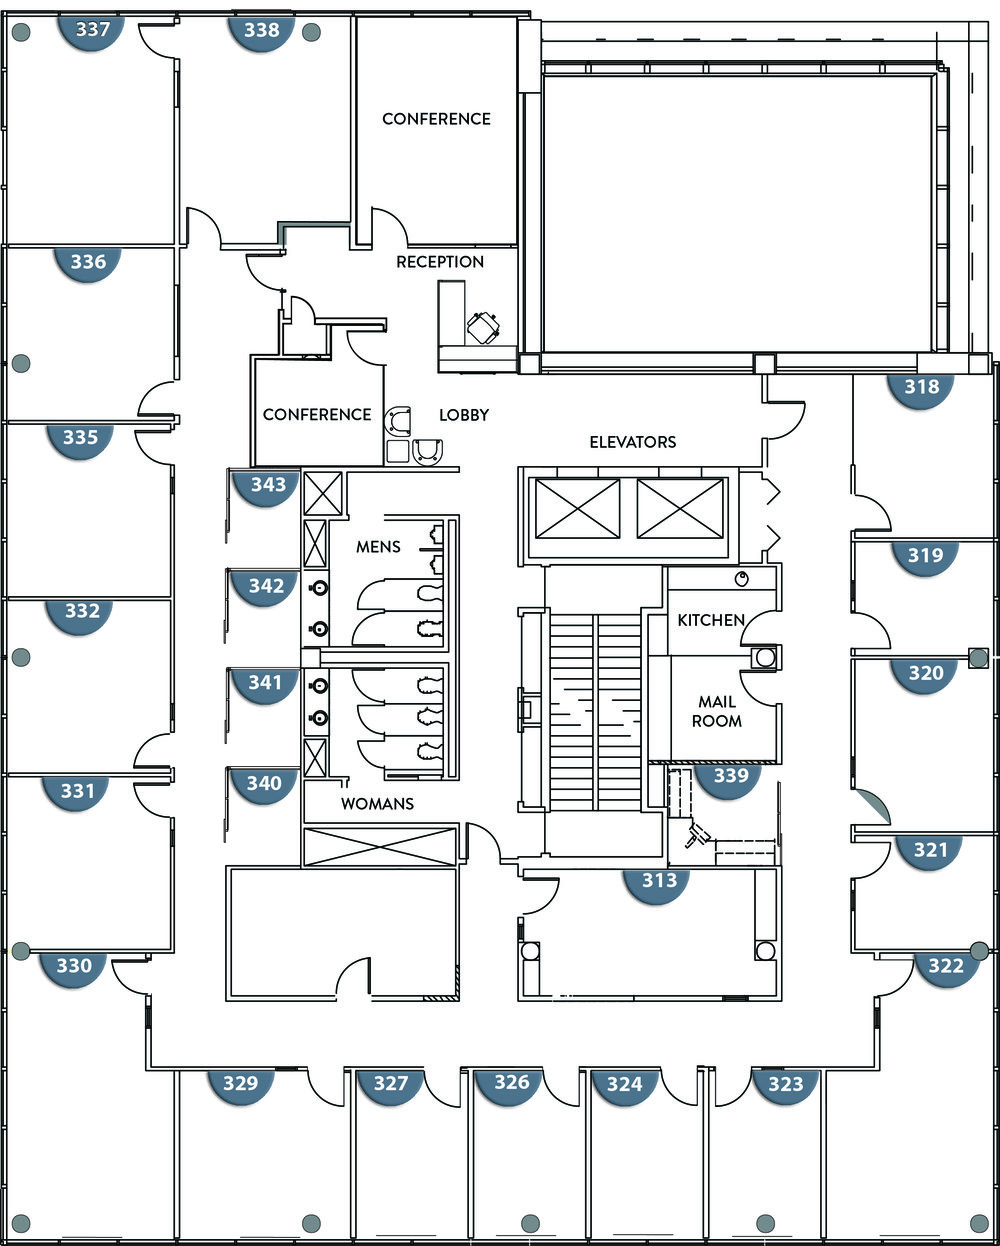 3rd floor layout-2017.jpg